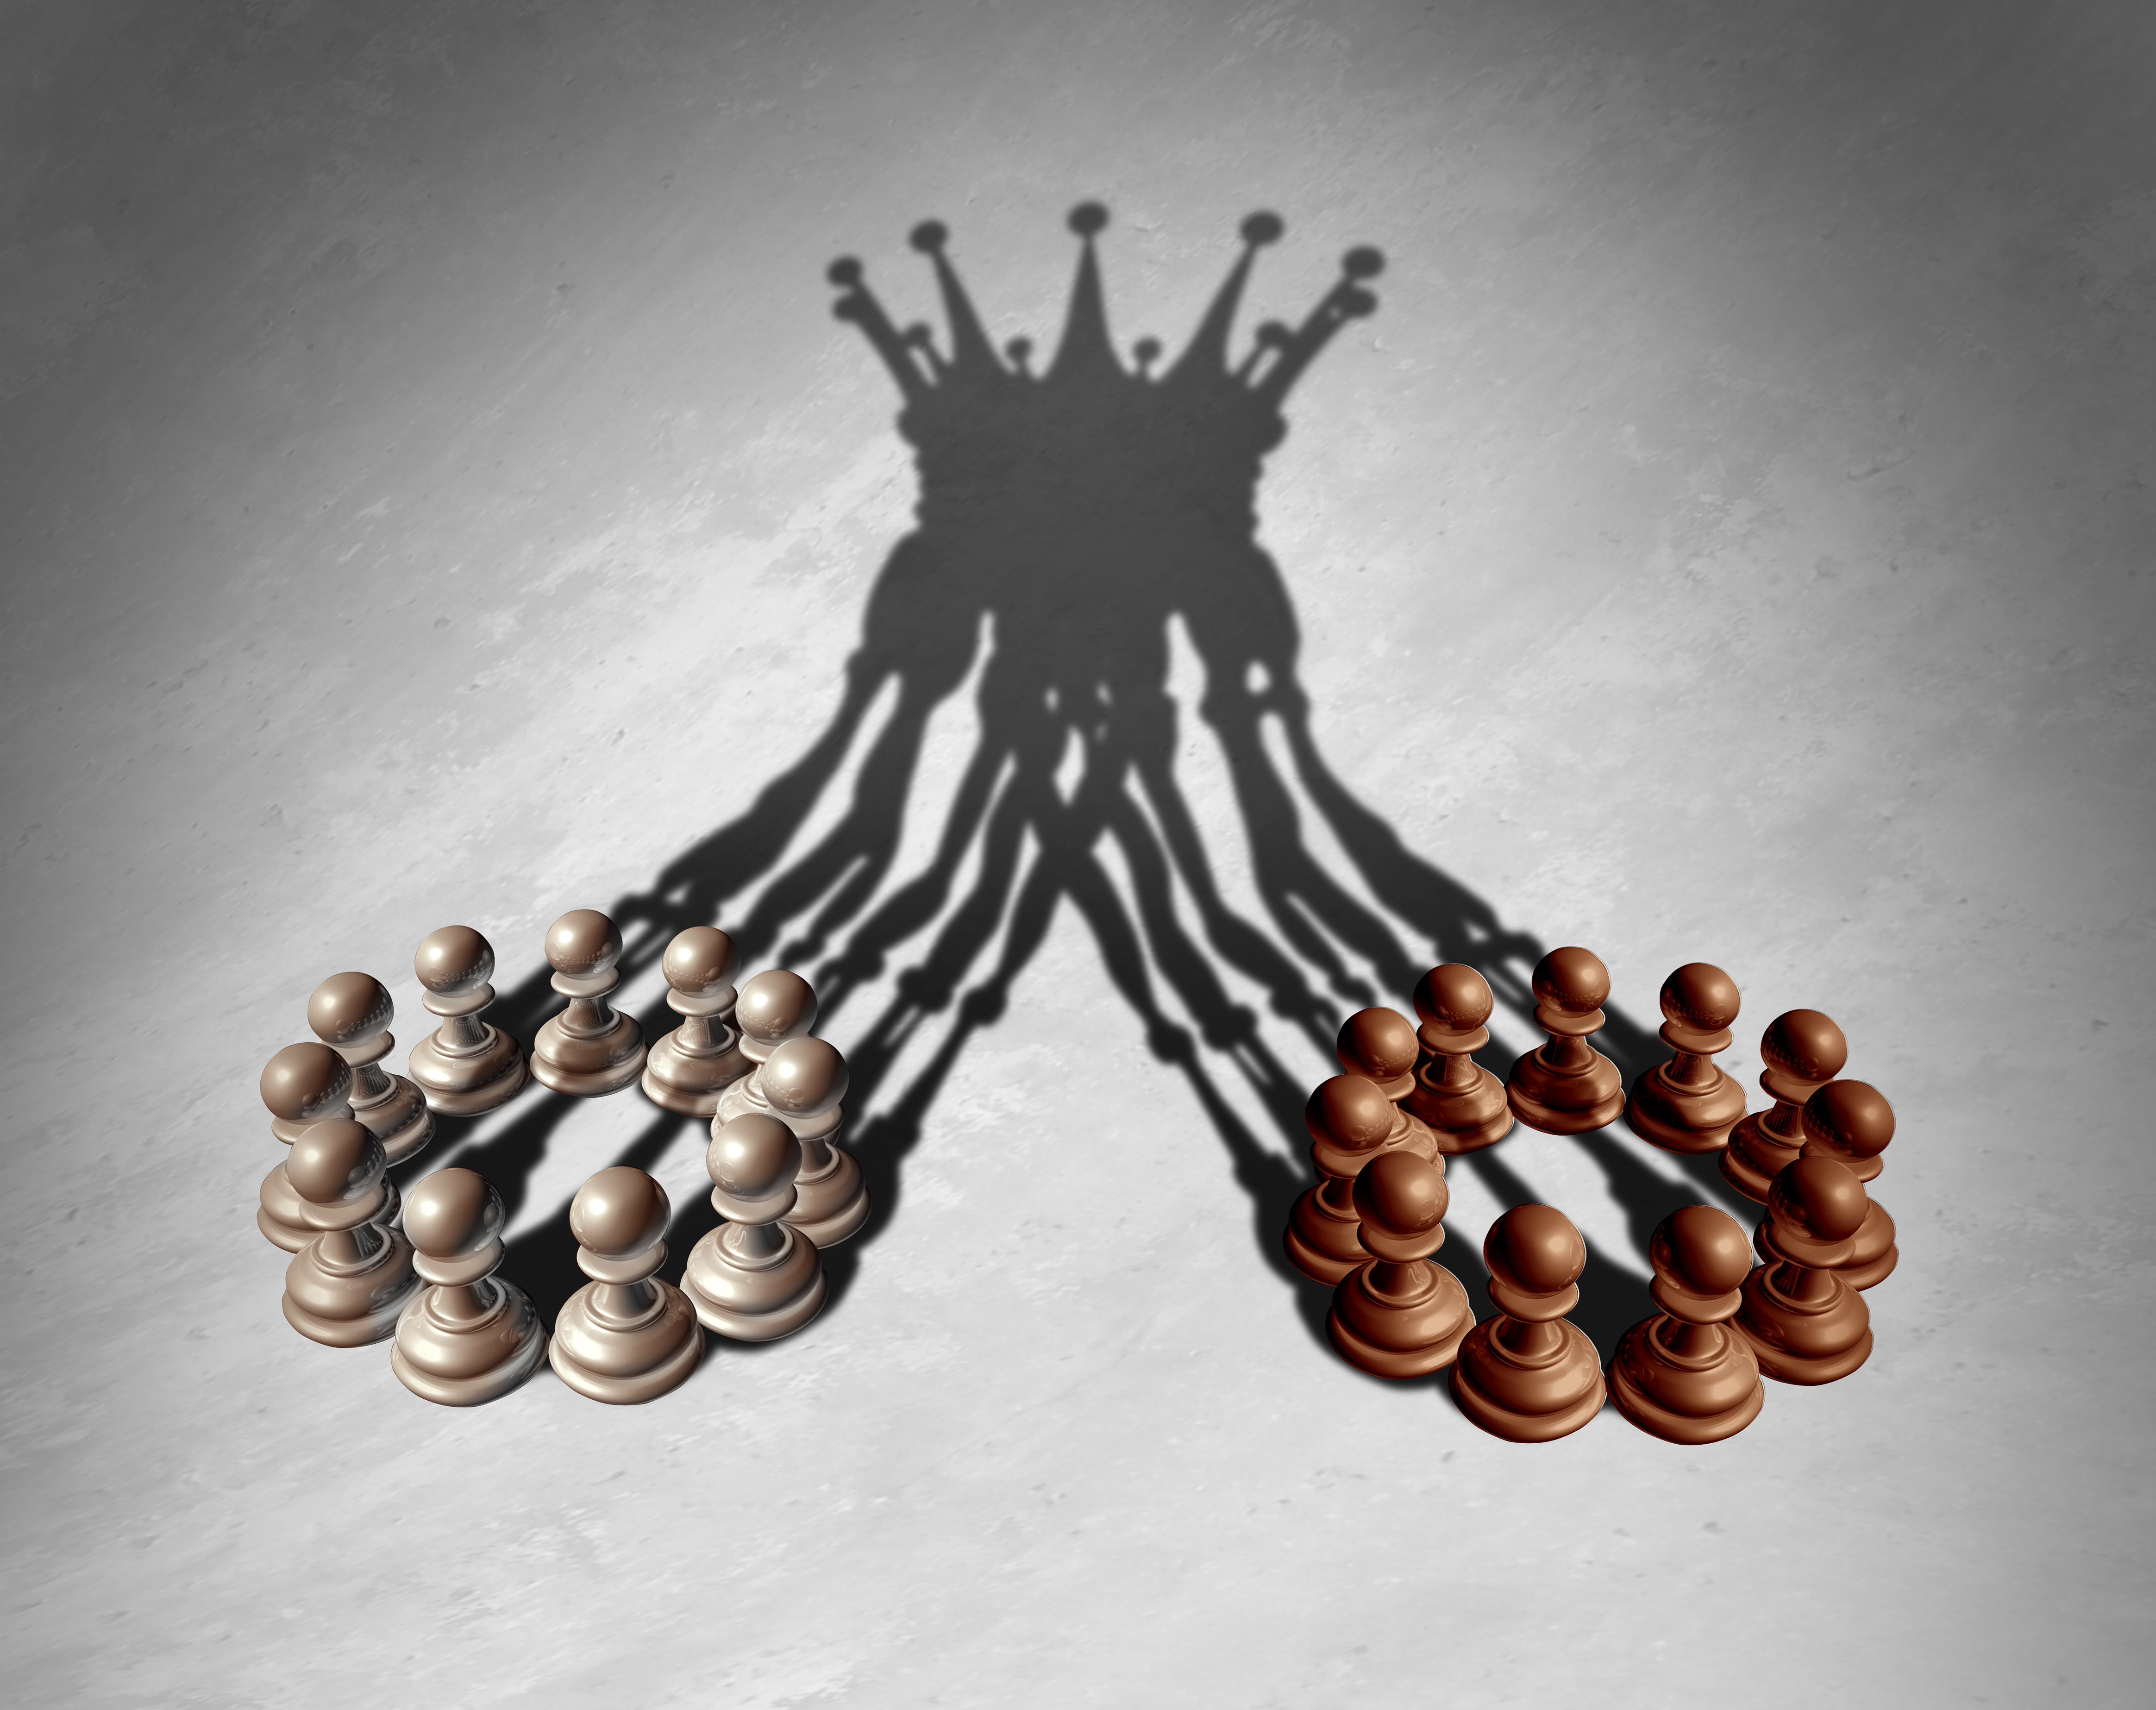 Image of chess pawns forming a king crown cast shadow to represent a merger.